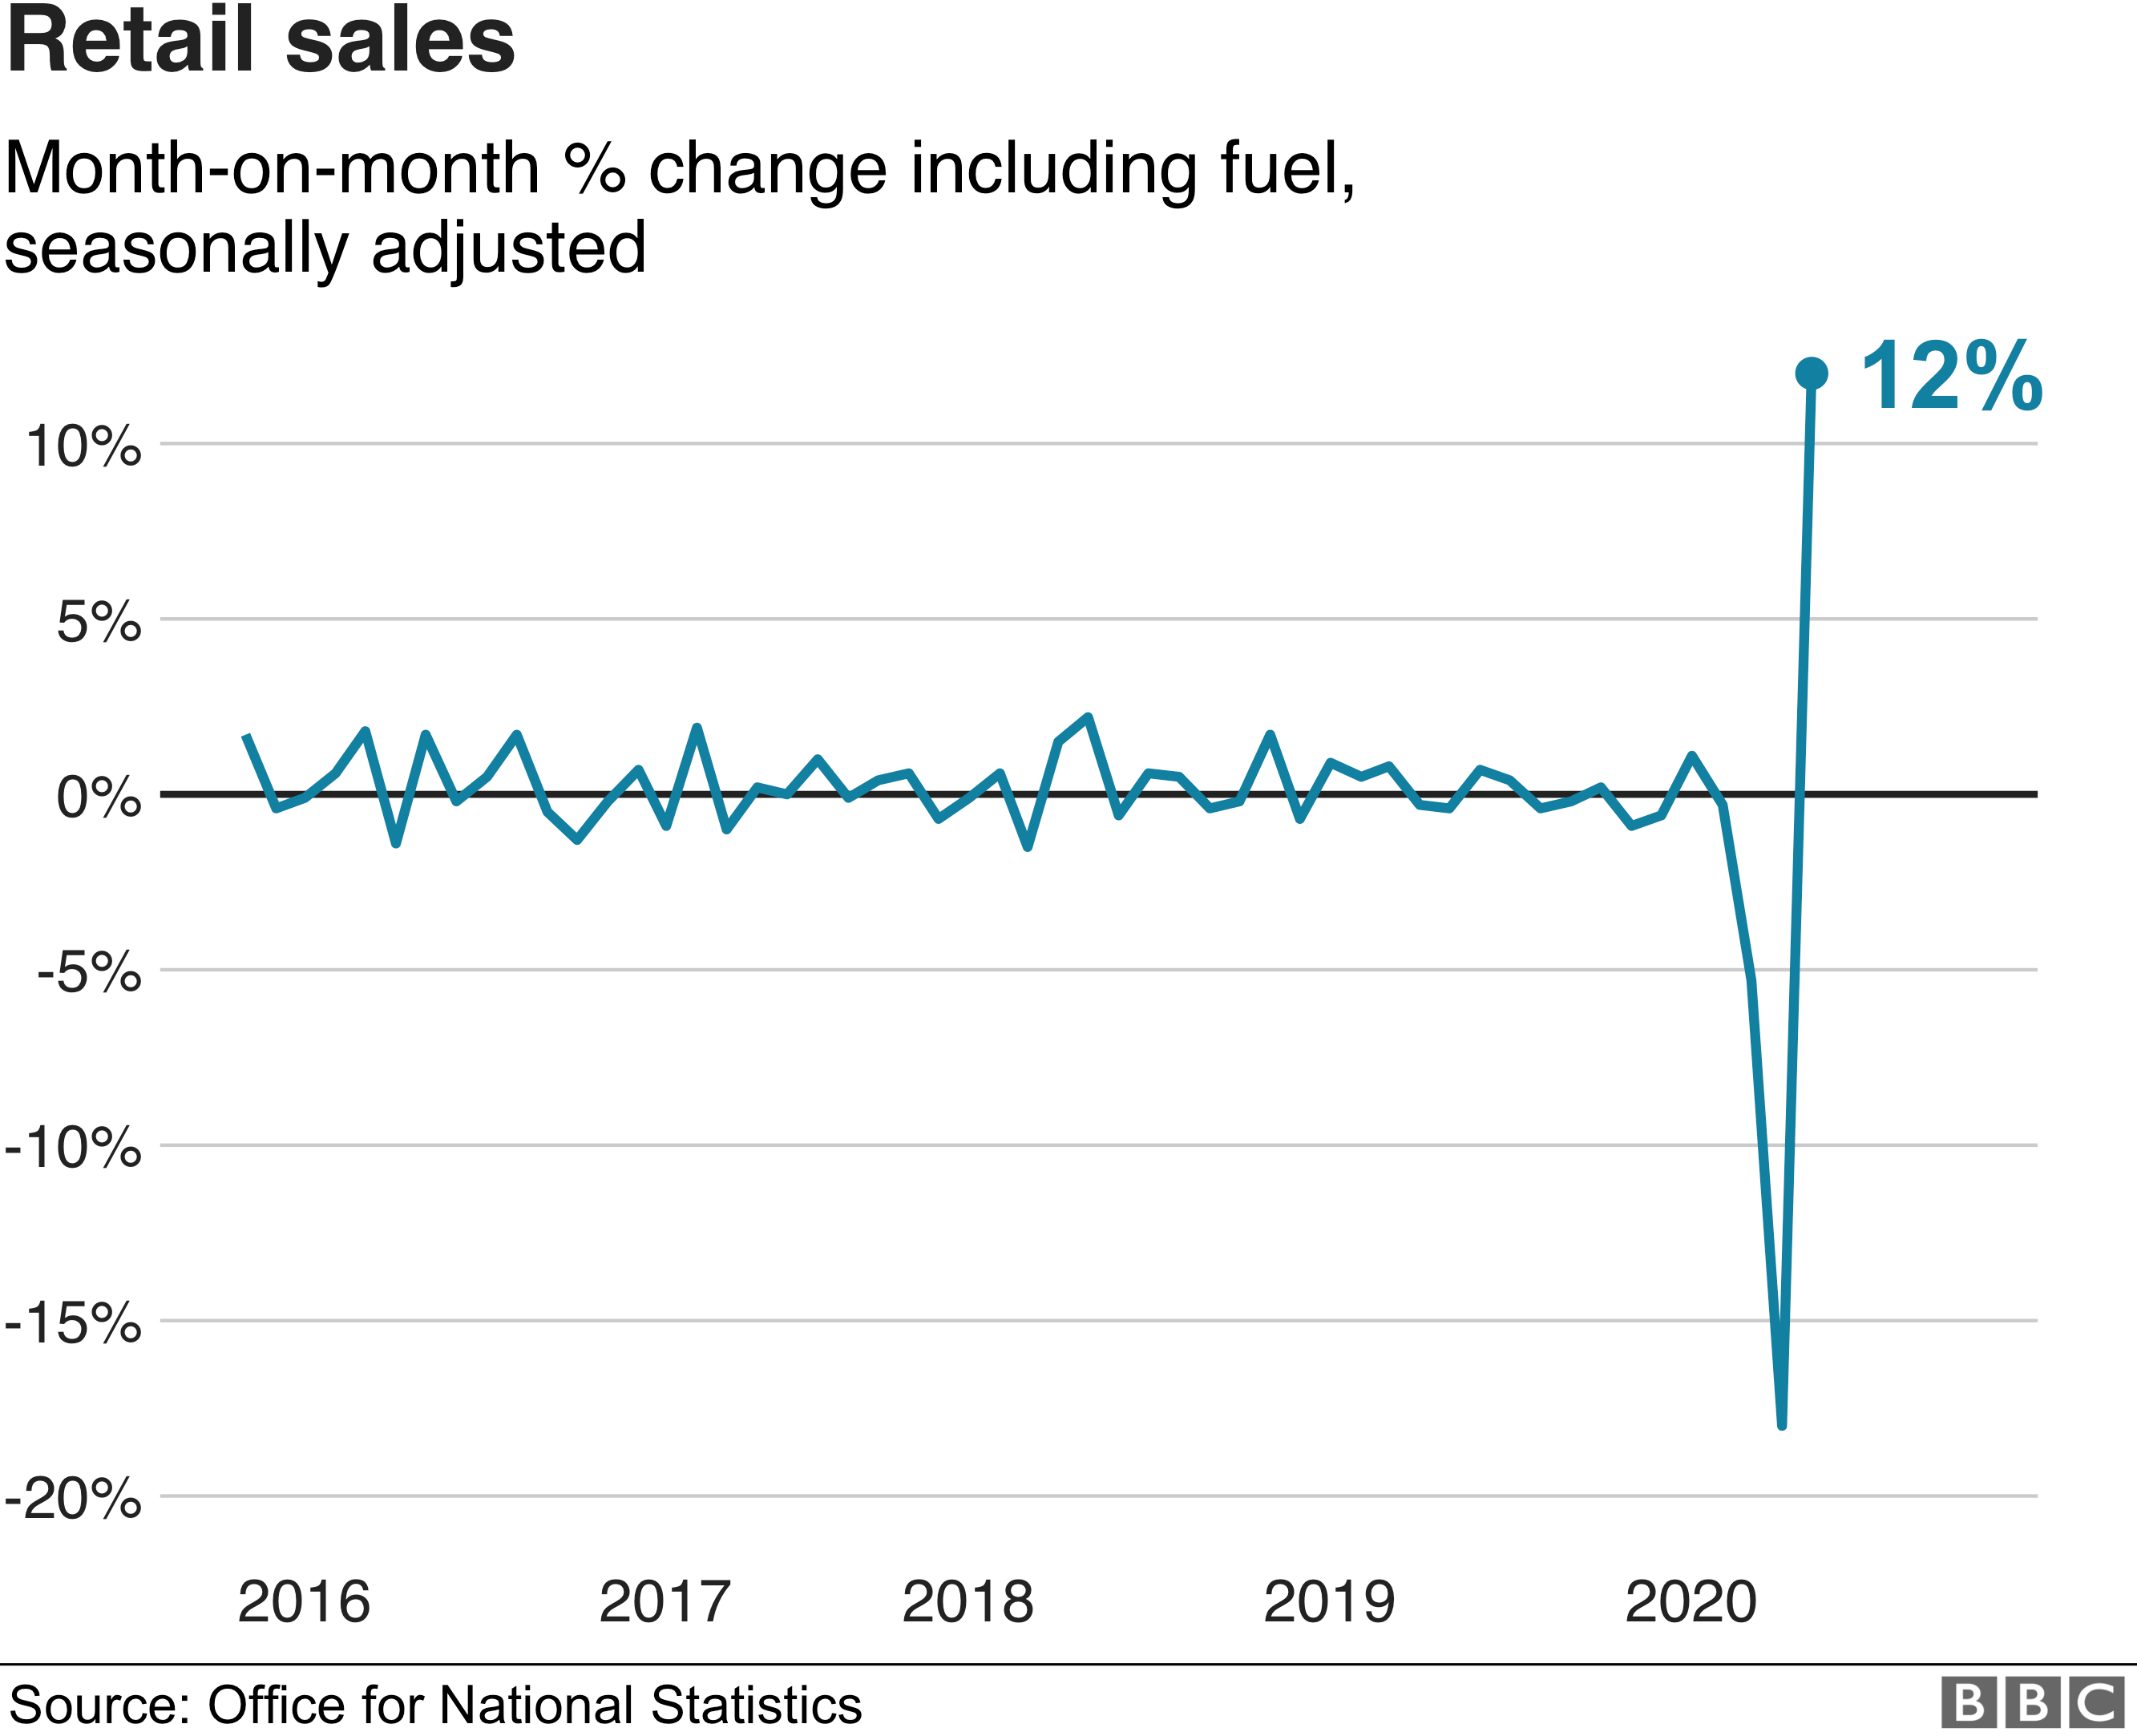 Retail sales - month-on-month